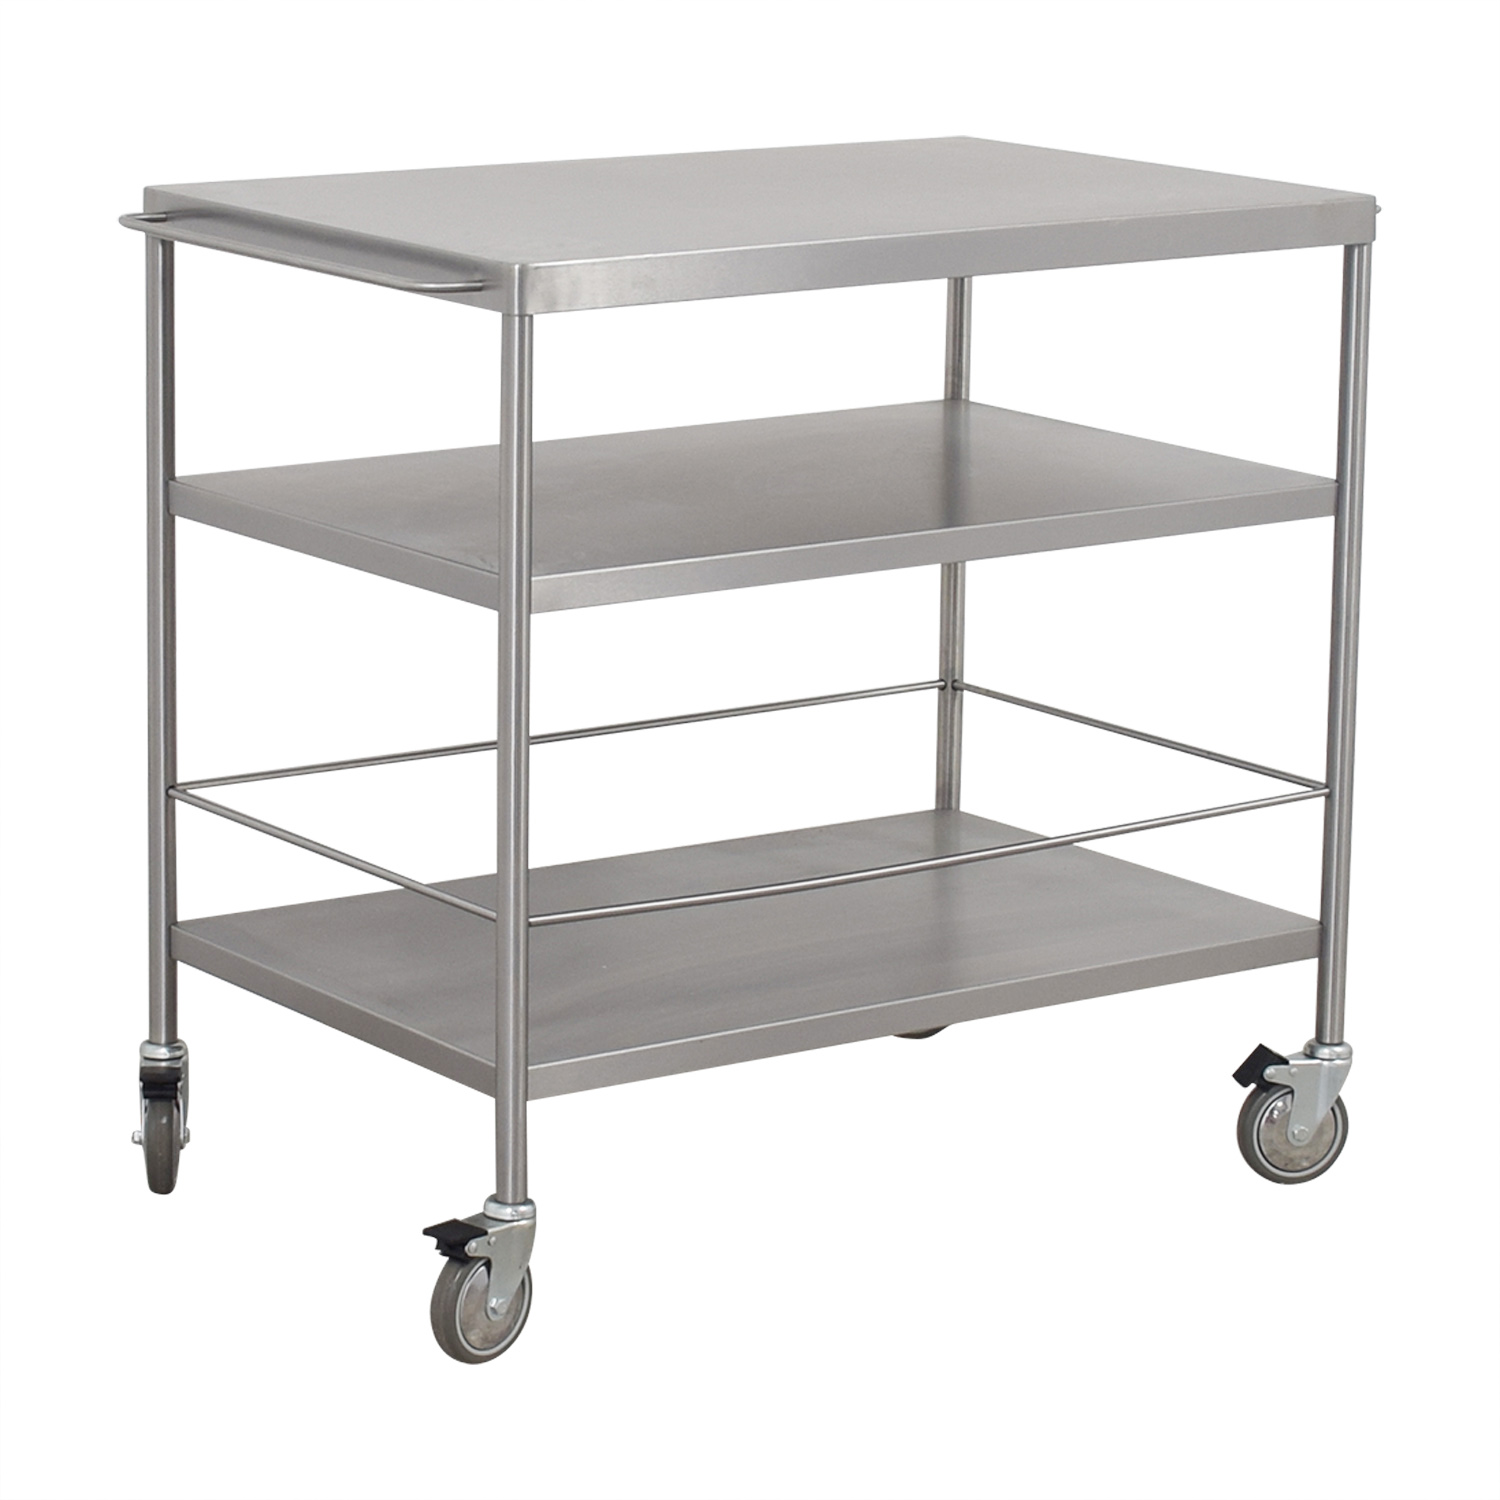 Ikea Kitchen Top 59 Off Ikea Ikea Stainless Steel Kitchen Cart Tables